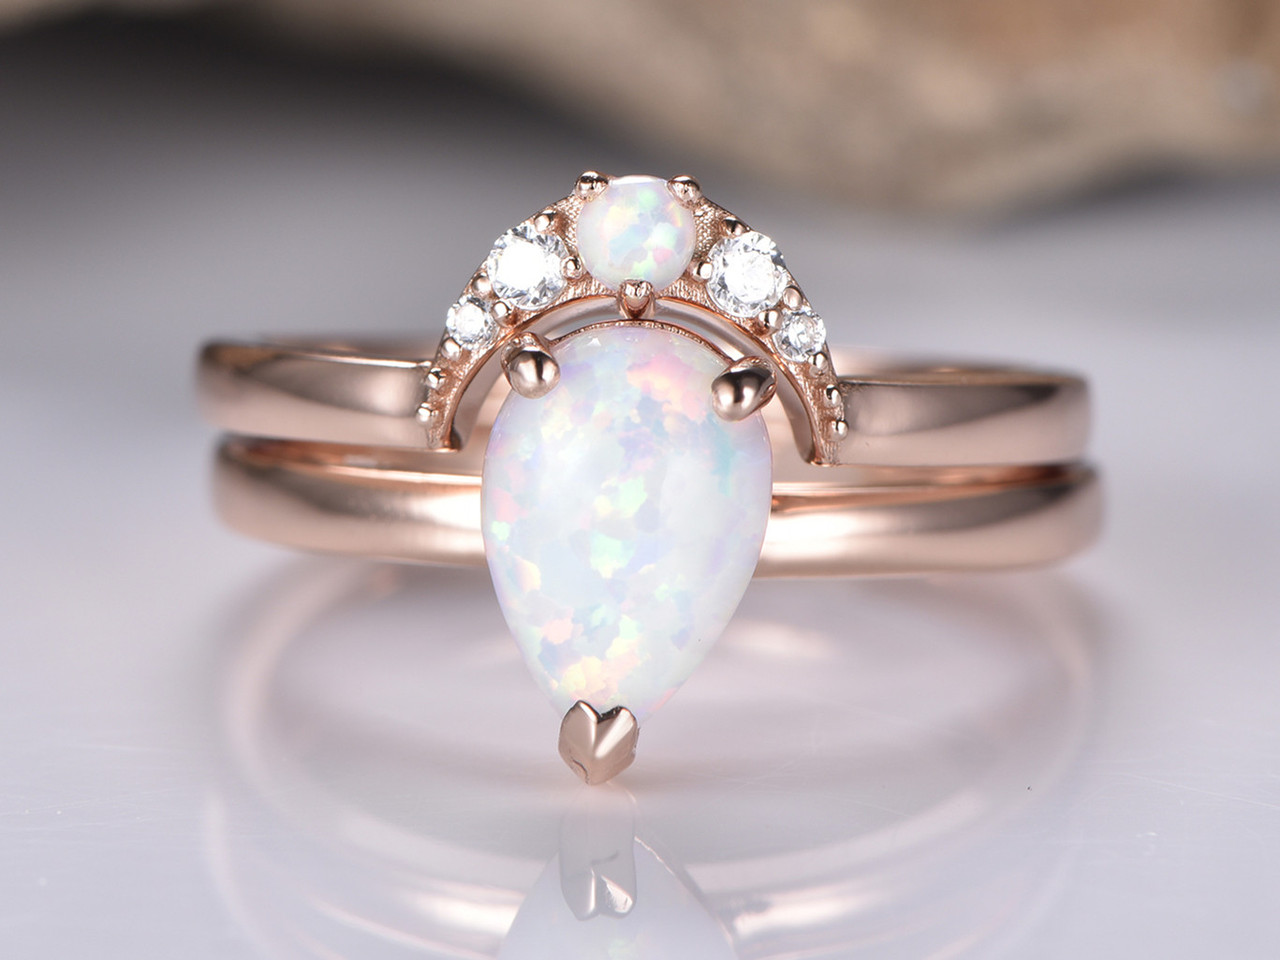 Opal Wedding Band.2pc Bridal Set Pear Opal Wedding Moissanite Crescent Band 14k Rose Gold 6x8mm